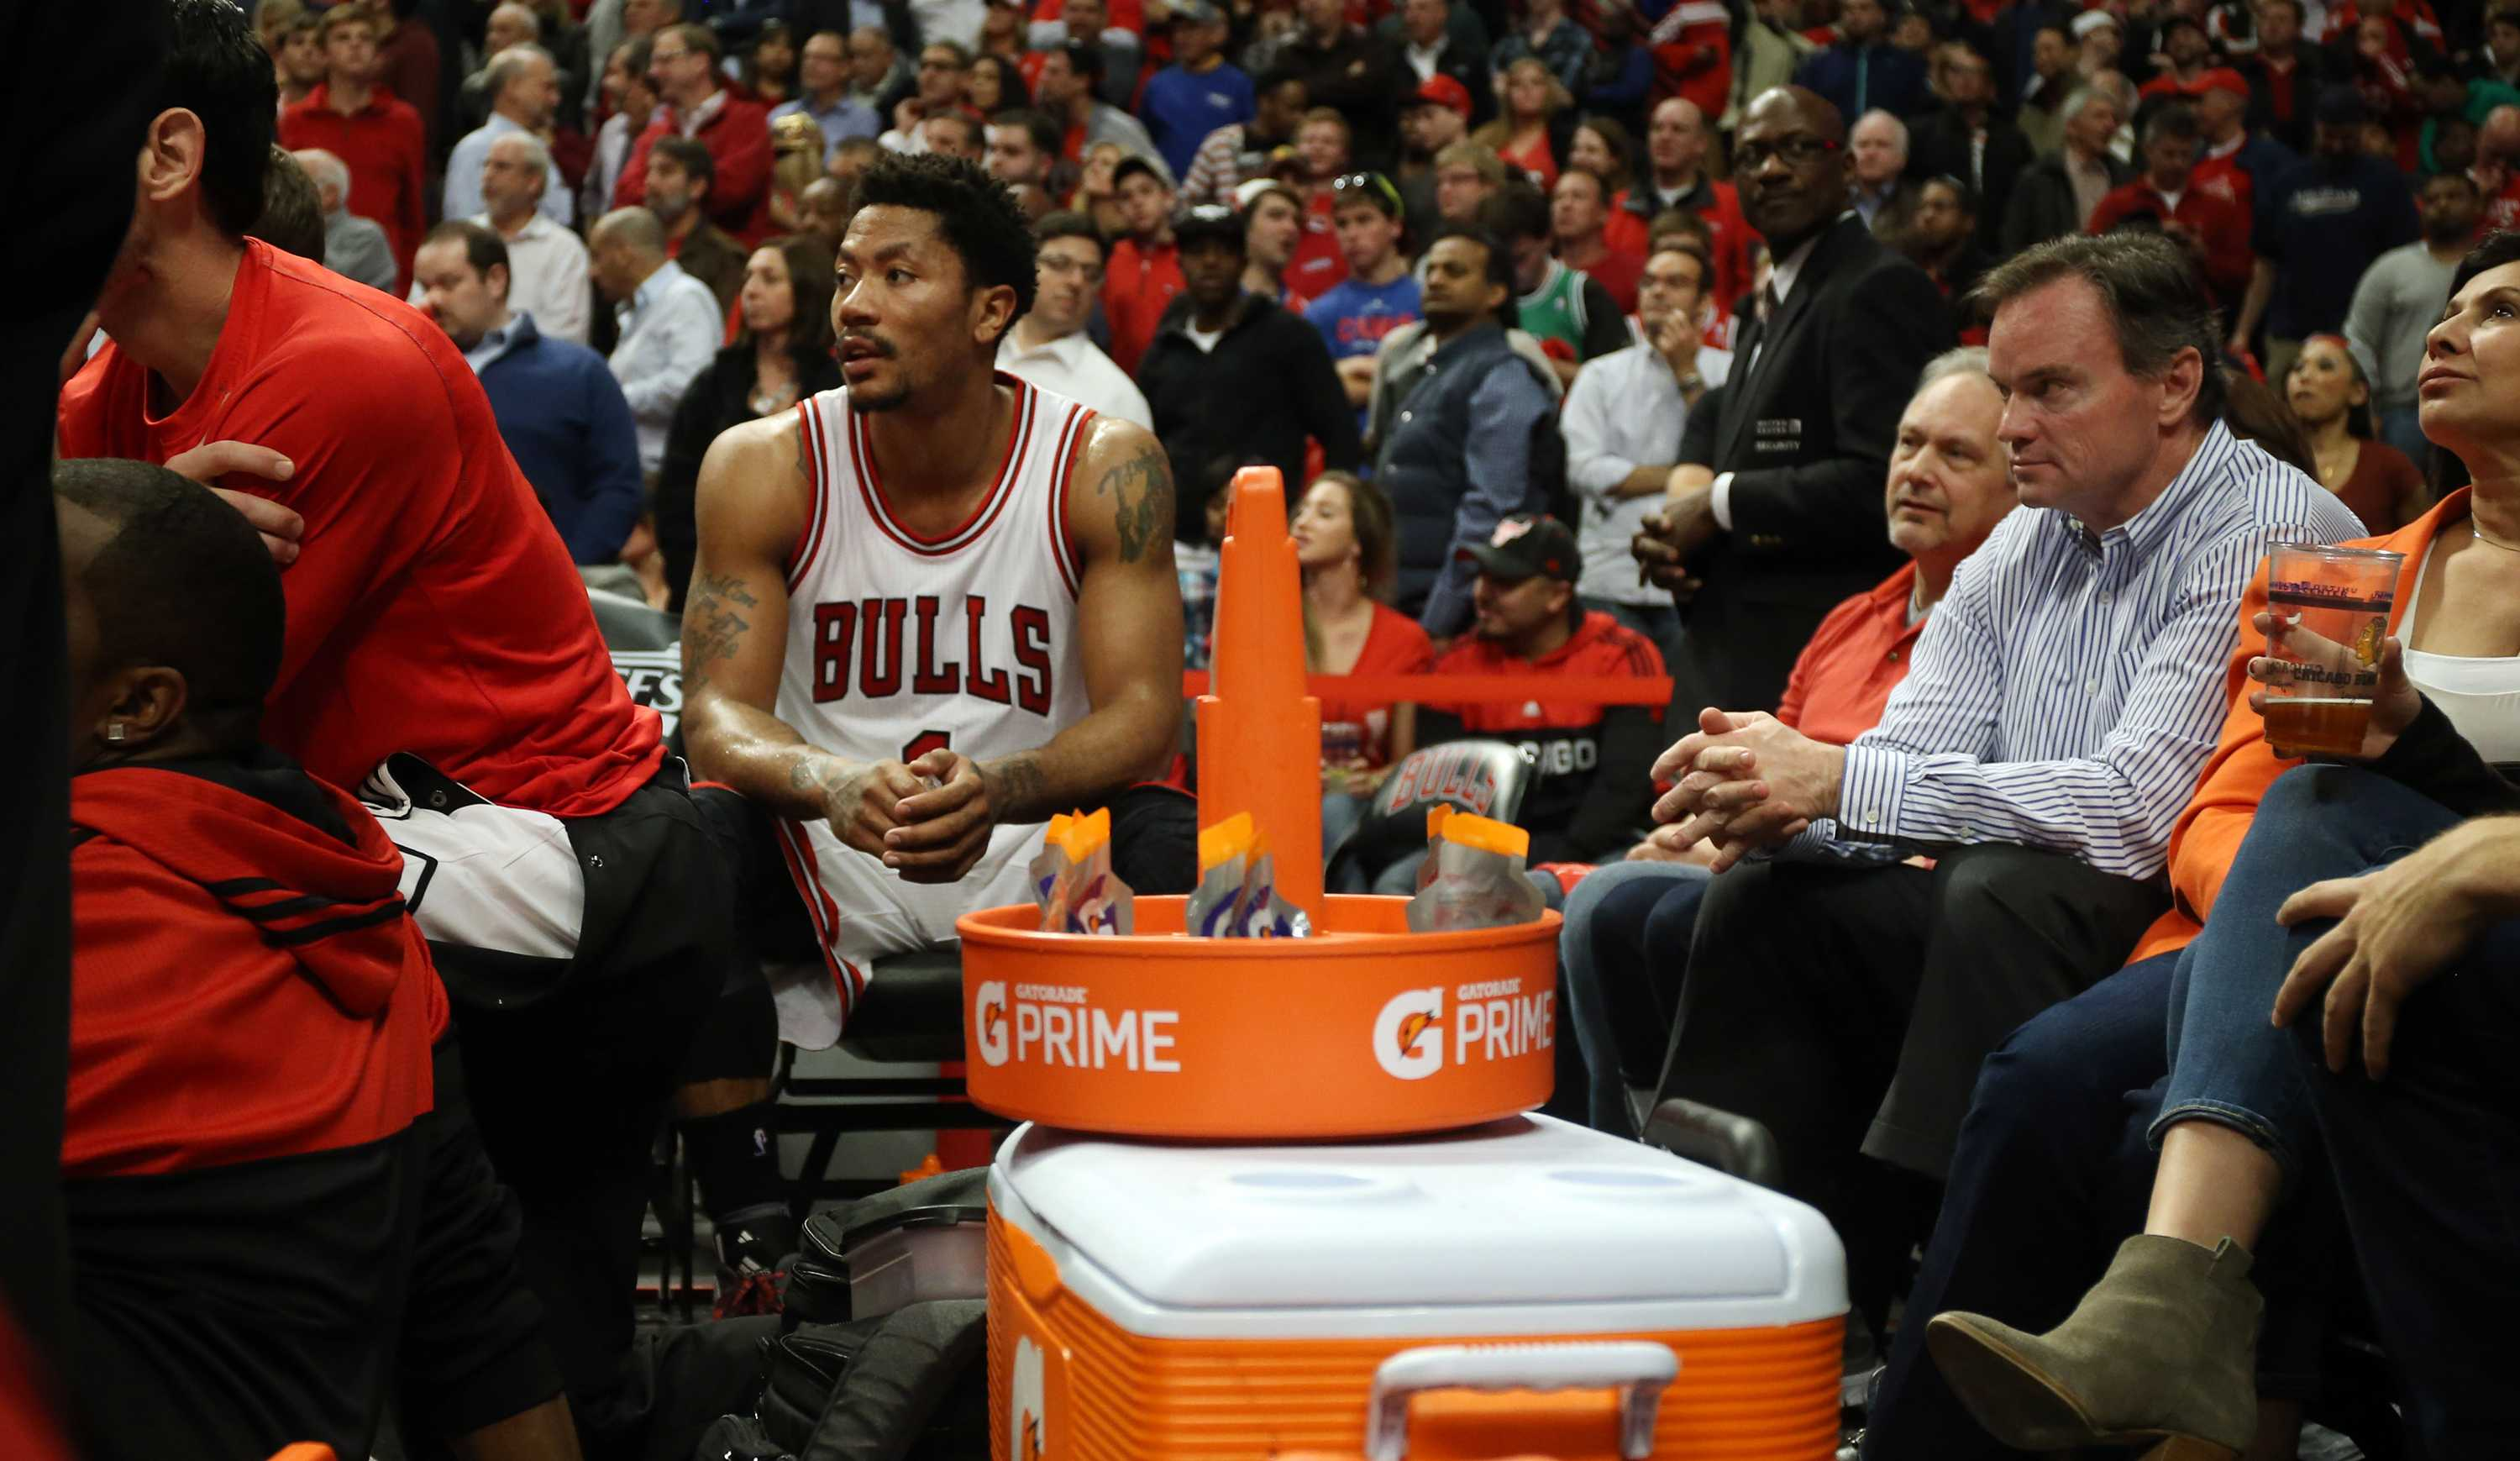 Chicago Bulls guard Derrick Rose (1) watches a defensive possession in the final minute from the bench on Monday, April 27, 2015, at the United Center in Chicago in Game 5 of a first-round playoff series. The Bucks defeated the Bulls, 94-88. (Brian Cassella/Chicago Tribune/TNS)